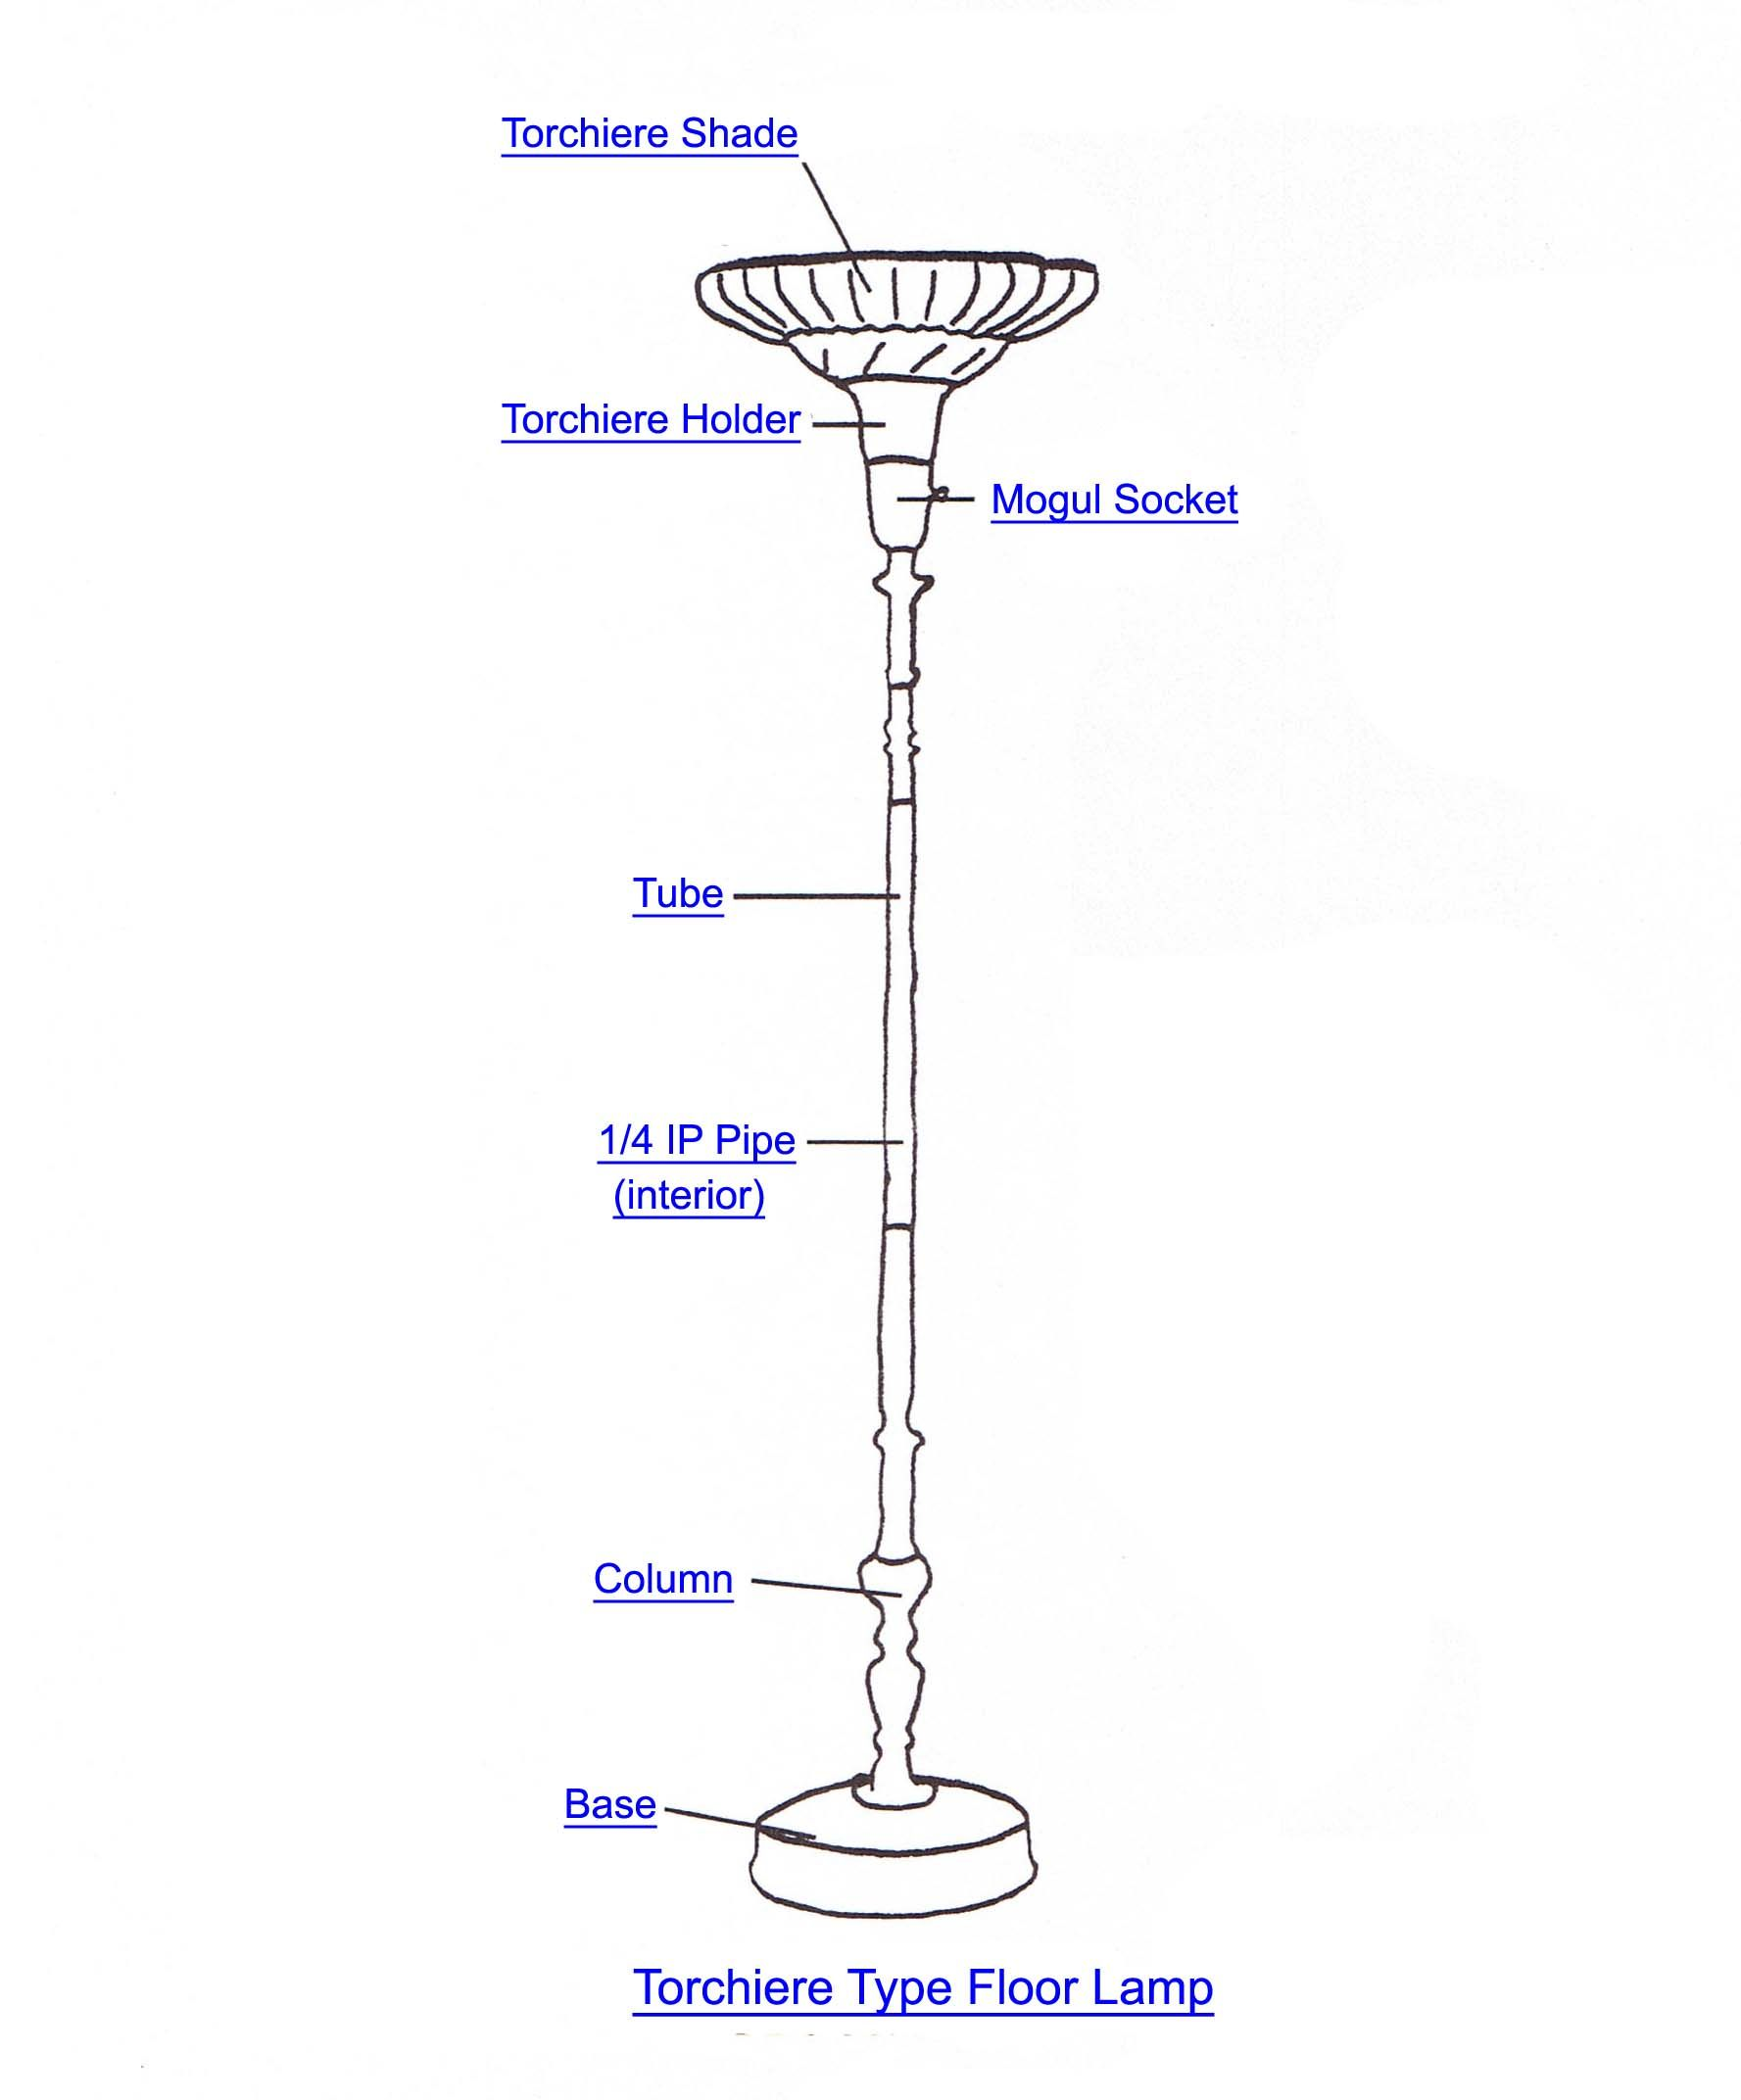 replacement chandelier table light you shade for lighting lamp wholesale plastic parts perfect torchiere dish glass ideas